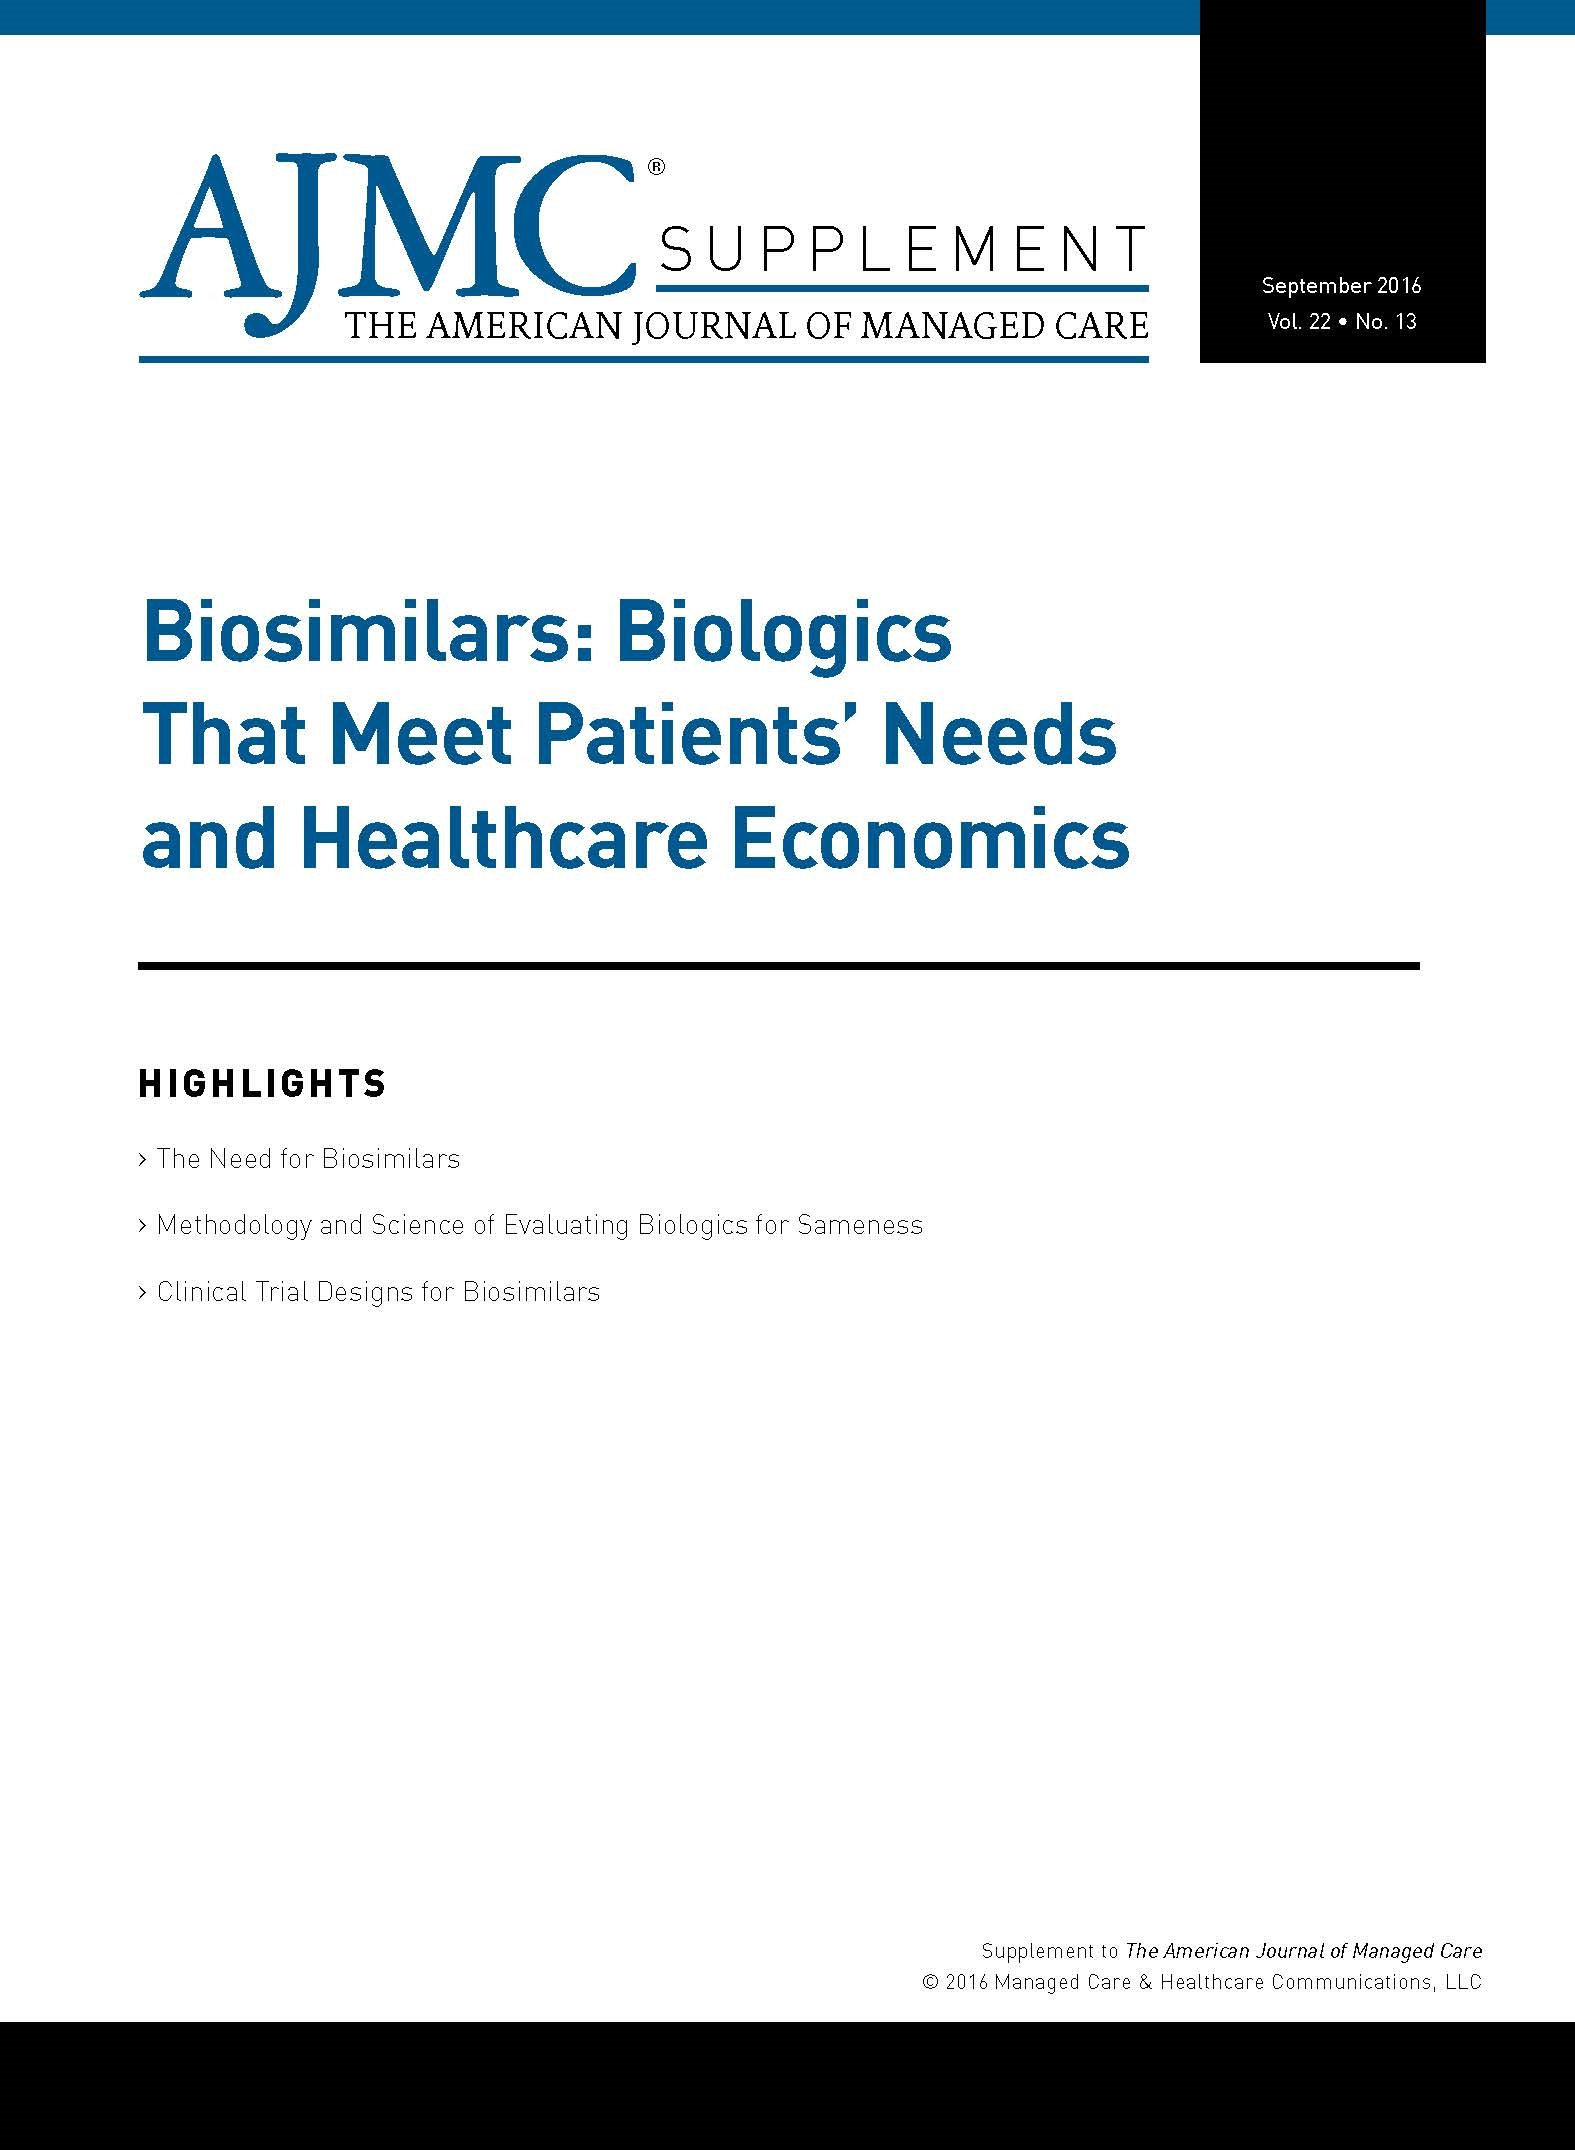 Biosimilars: Biologics That Meet Patients' Needs and Healthcare Economics